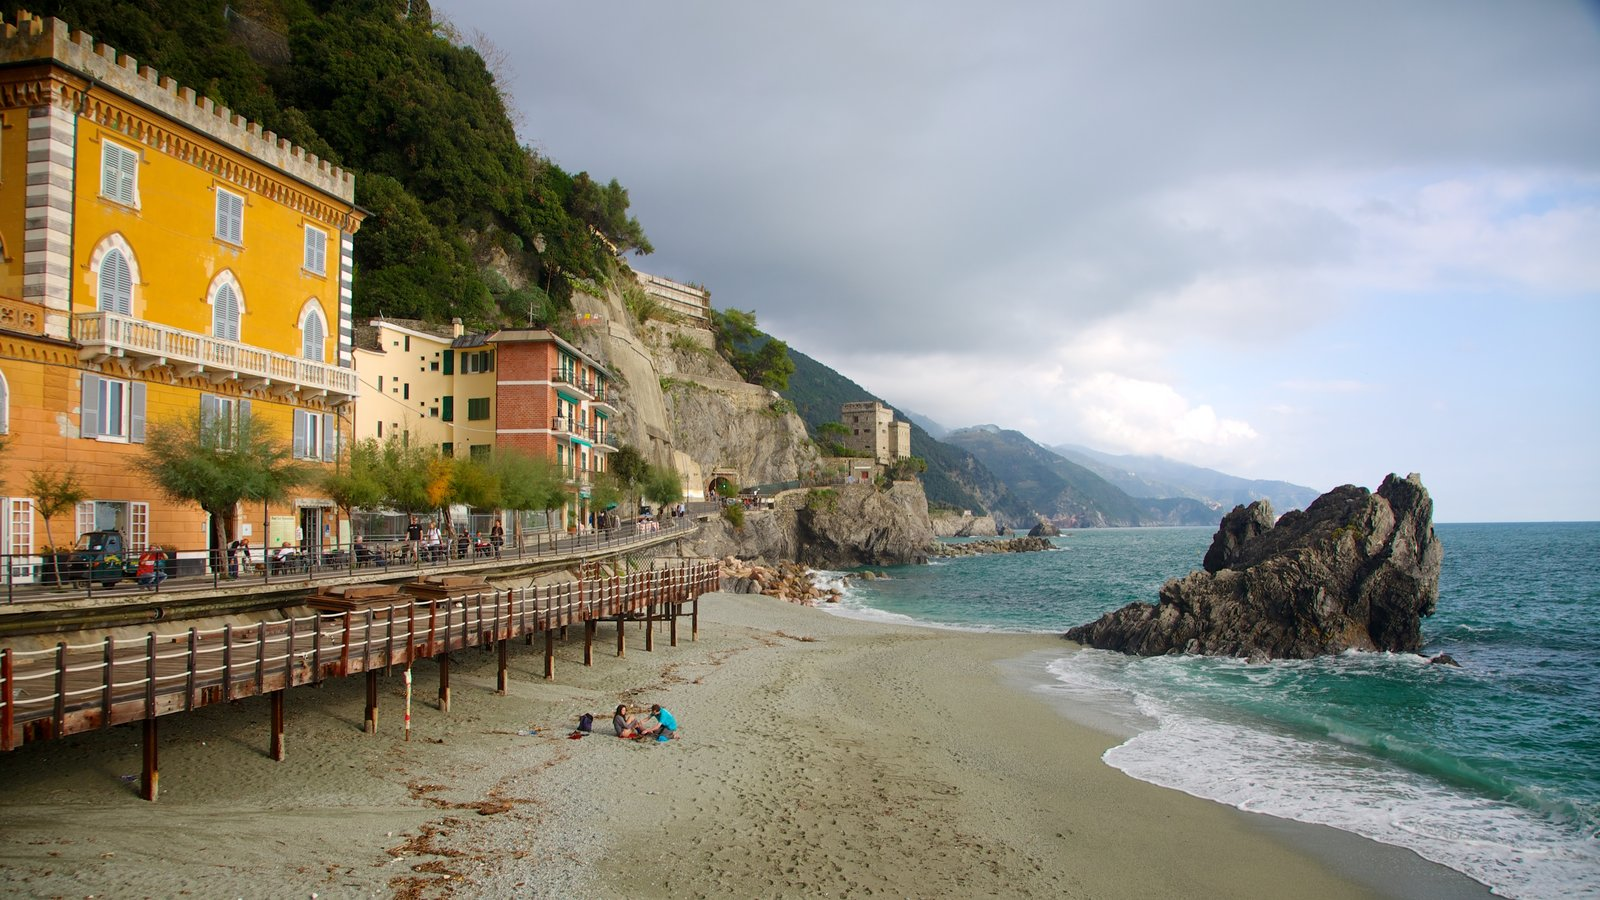 Monterosso al Mare which includes general coastal views, a sandy beach and a coastal town